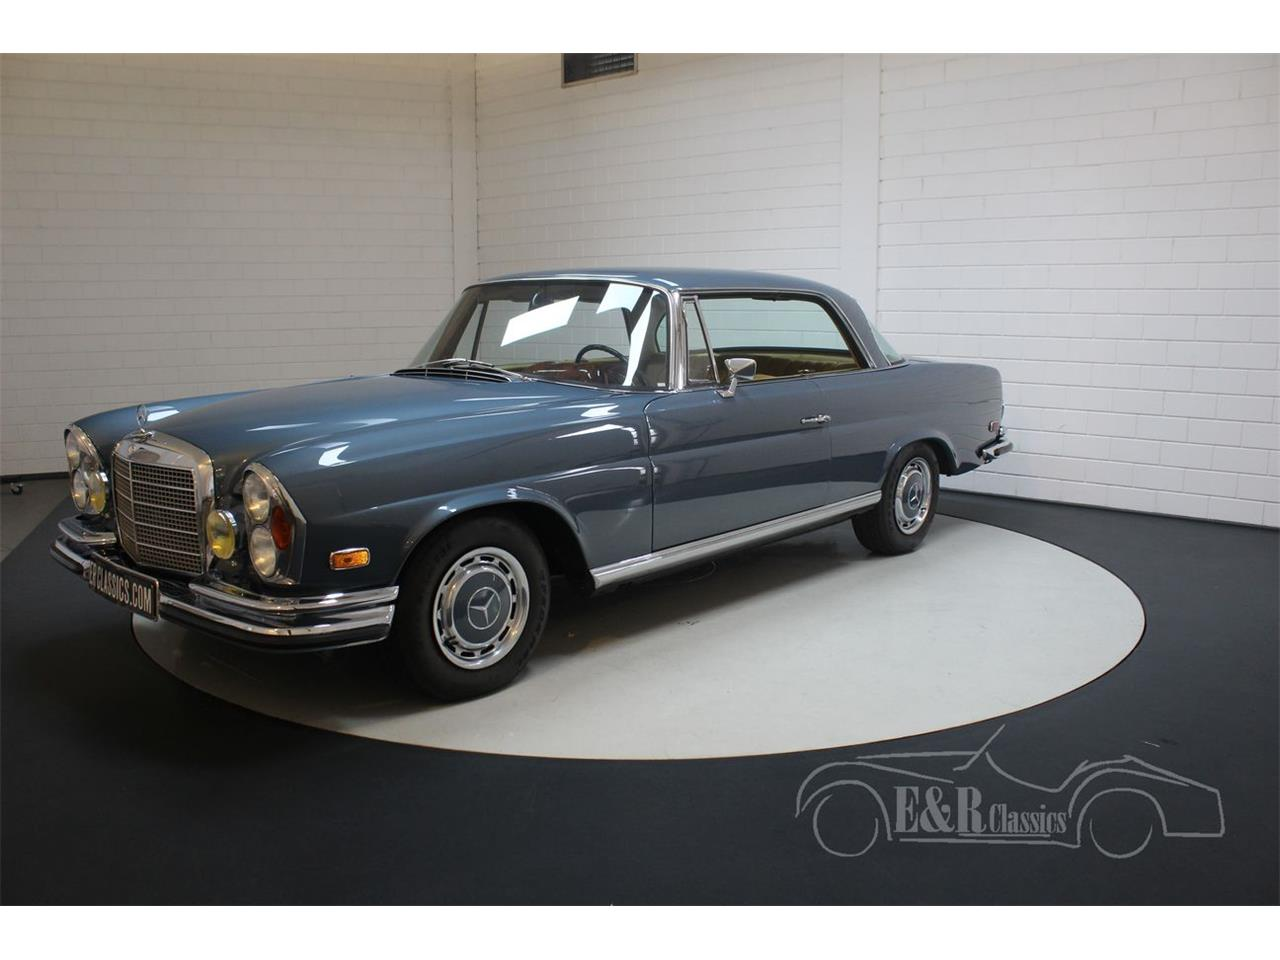 Large Picture of '71 Mercedes-Benz 280SE located in Waalwijk Noord-Brabant - $113,800.00 Offered by E & R Classics - QEBY